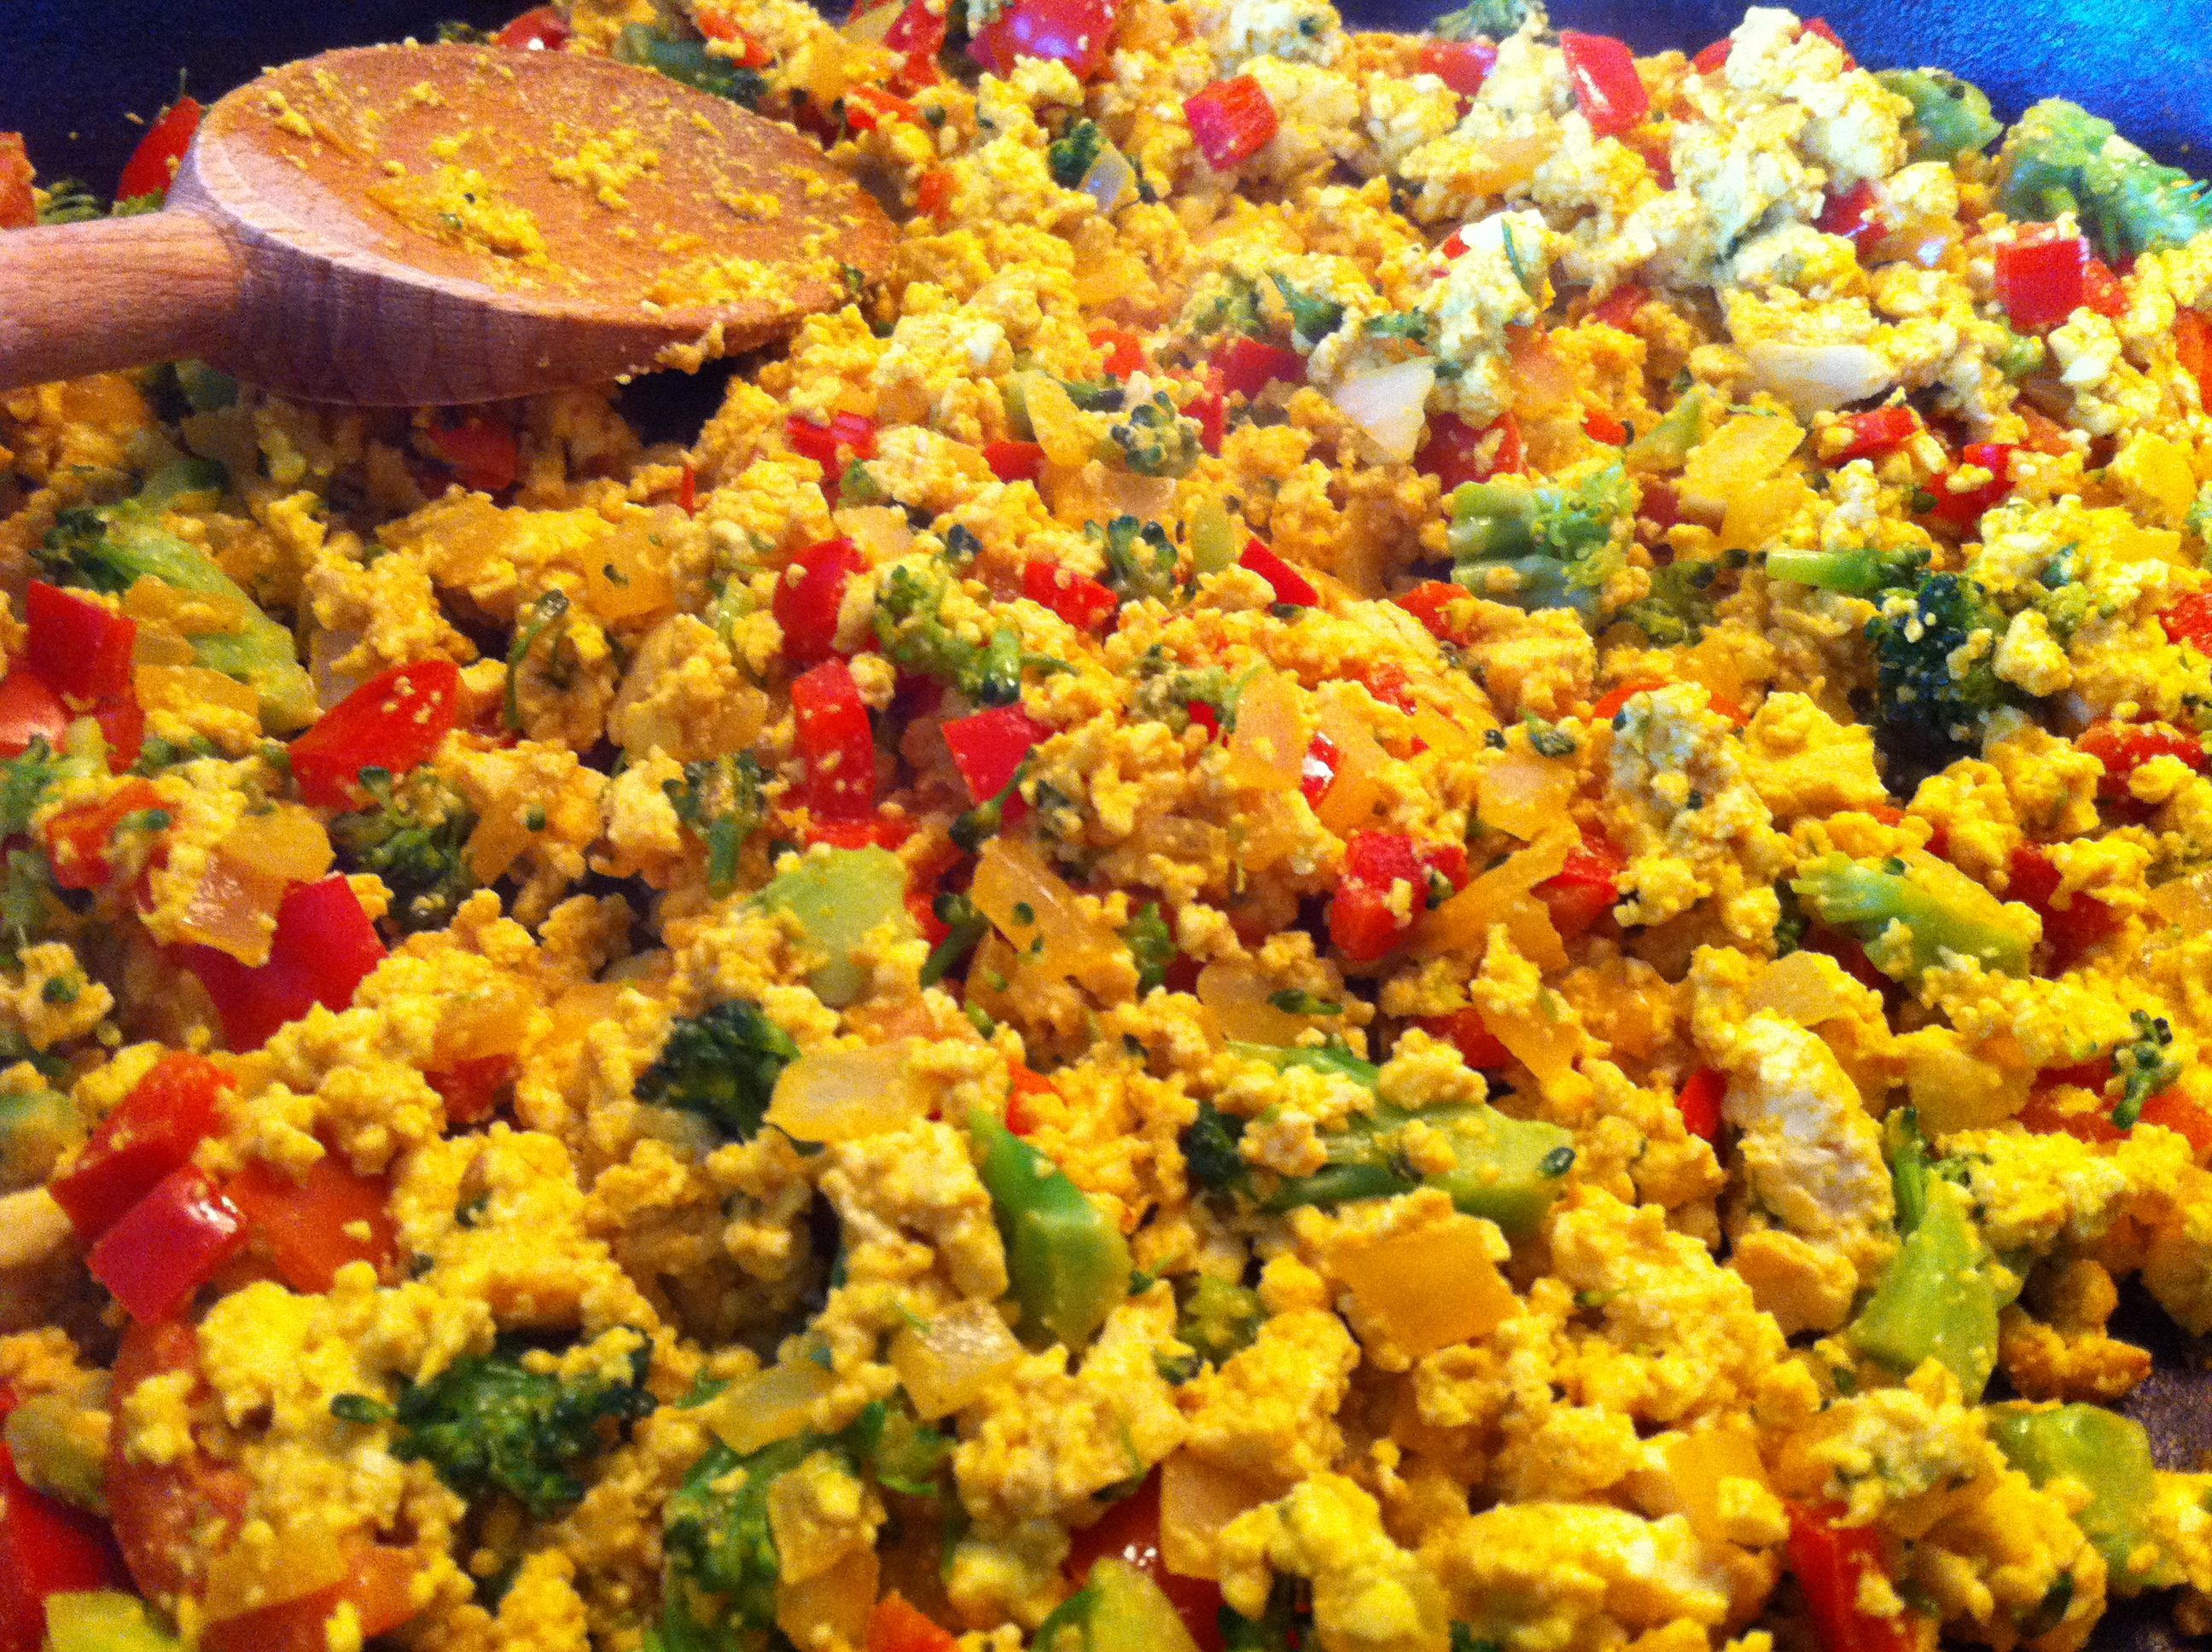 Tofu Scramble with Vegetables. Better Than Eggs? | The Plant Eater